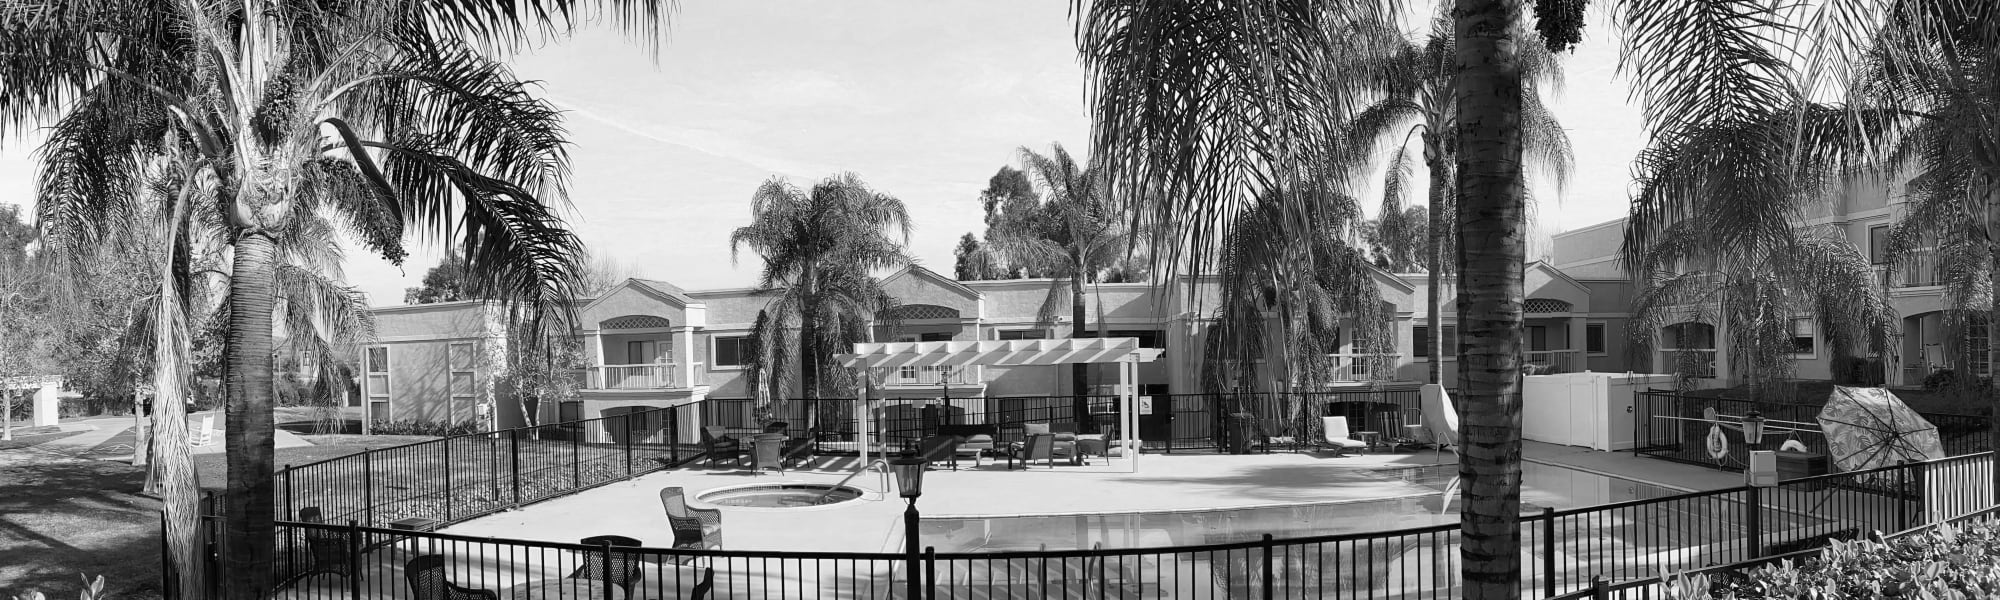 Services and amenities at Pacifica Senior Living Menifee in Sun City, California.